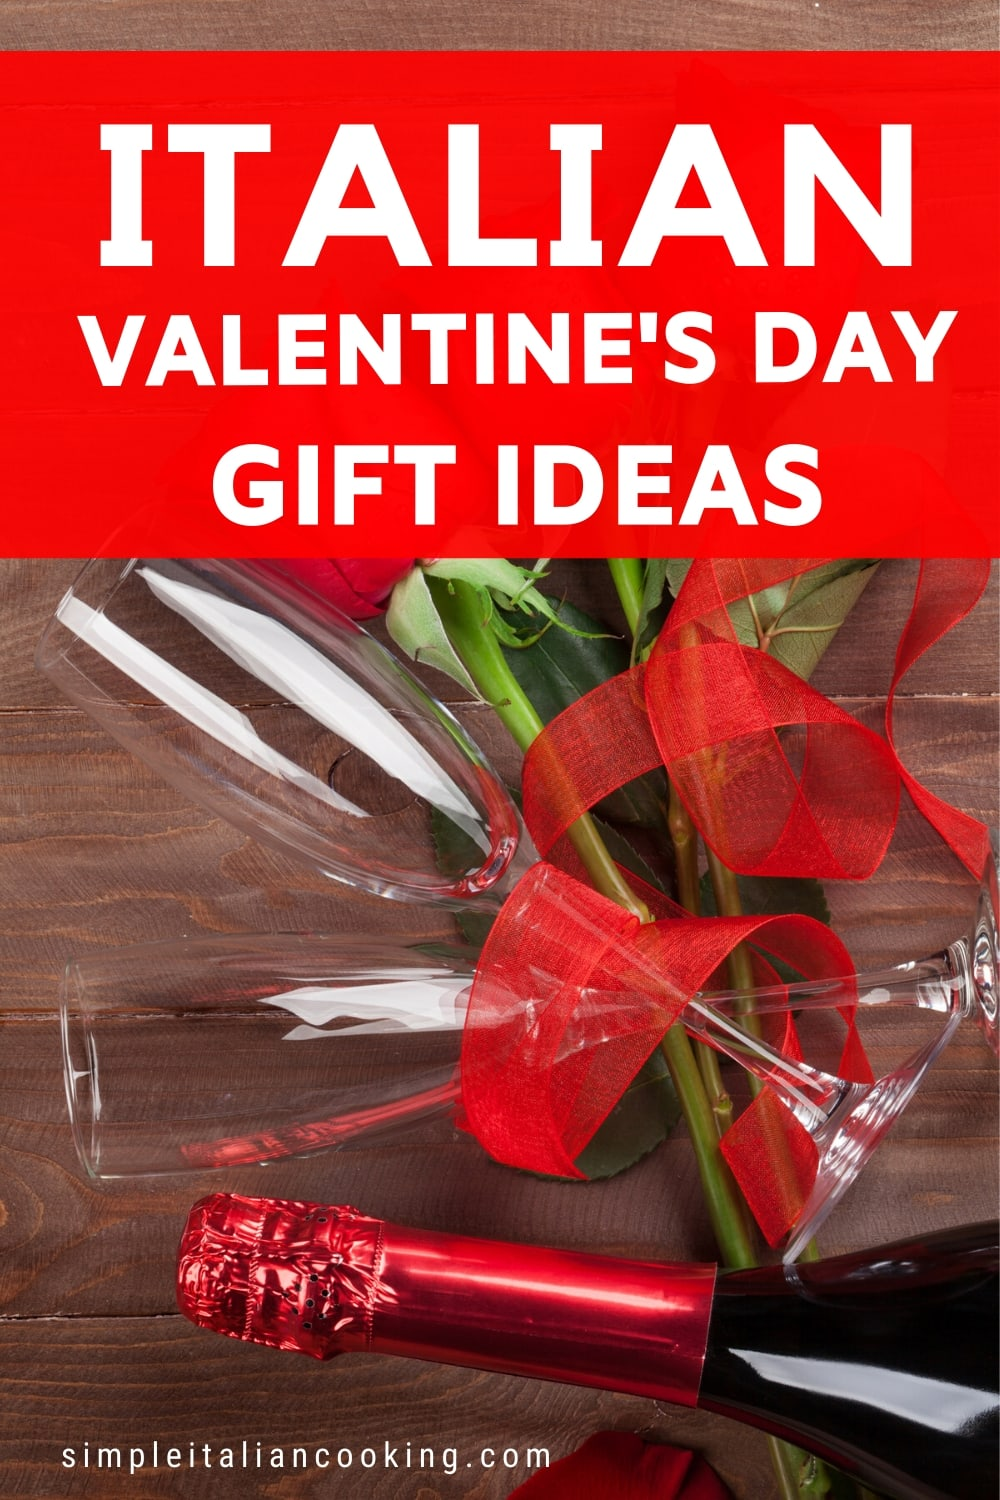 Italian Gift Ideas for Valentine's Day